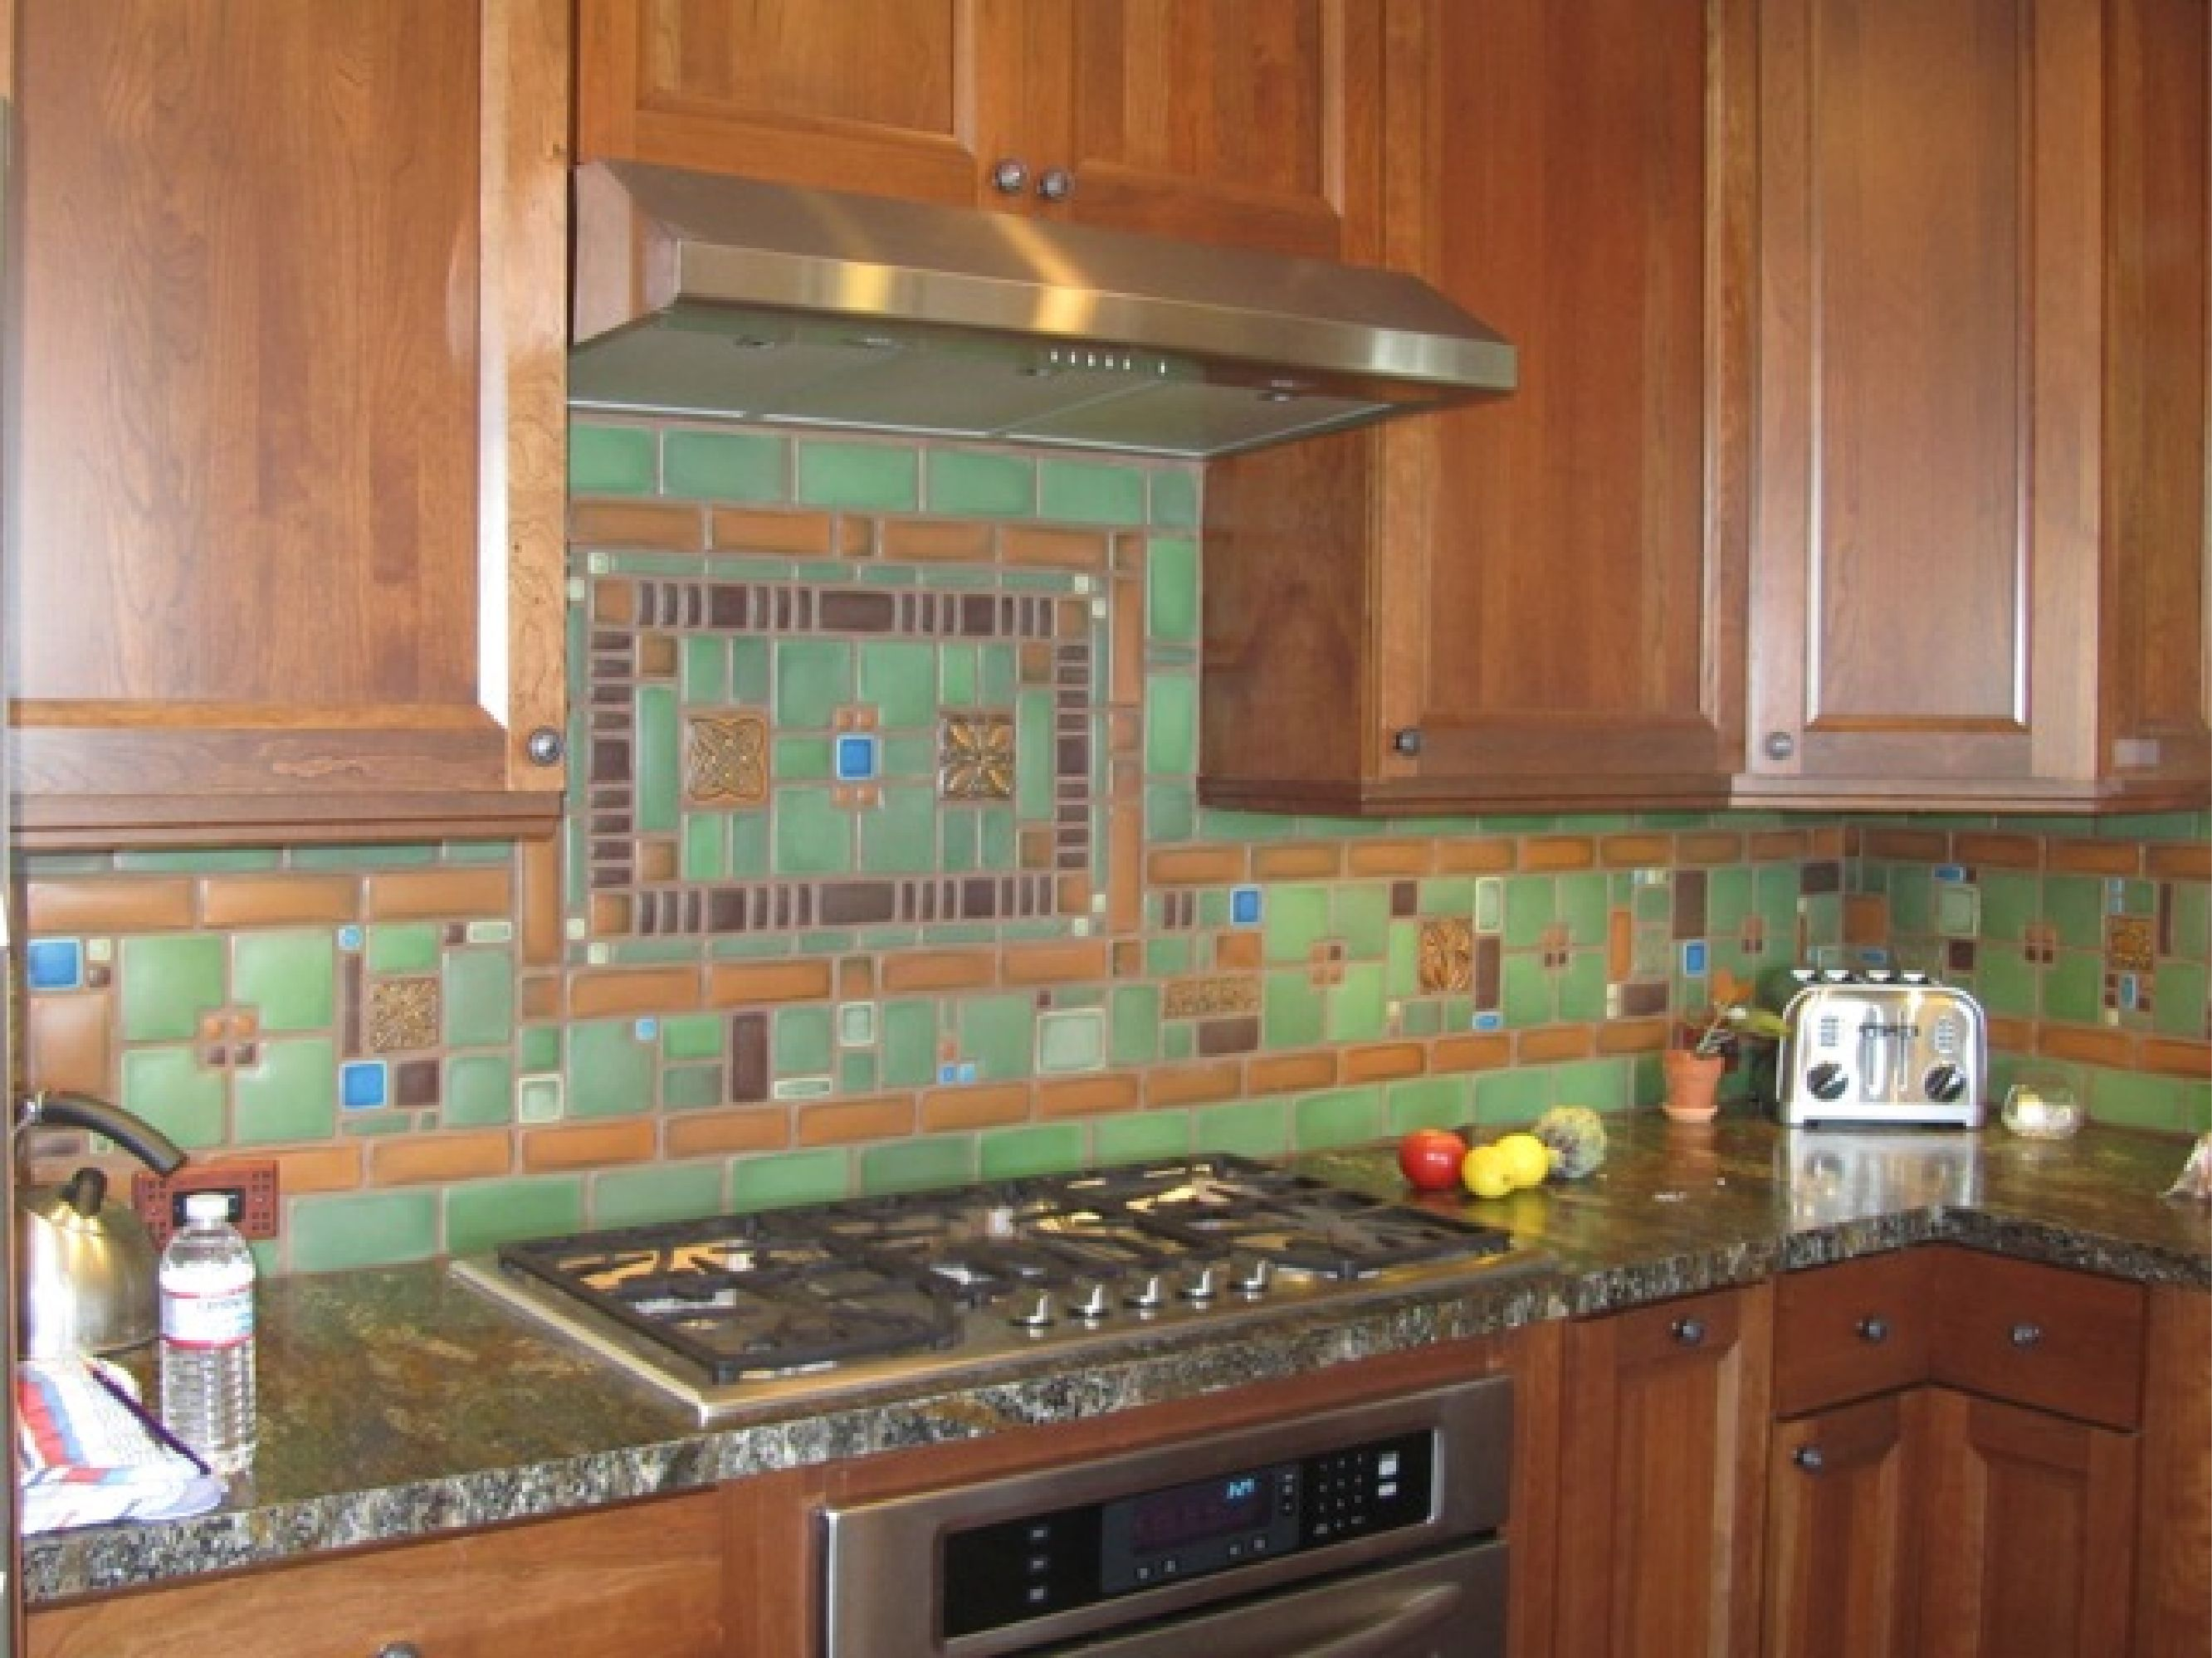 Motawi Collage Kitchen Backsplash by Tom Gerardy of Craftsman Revival